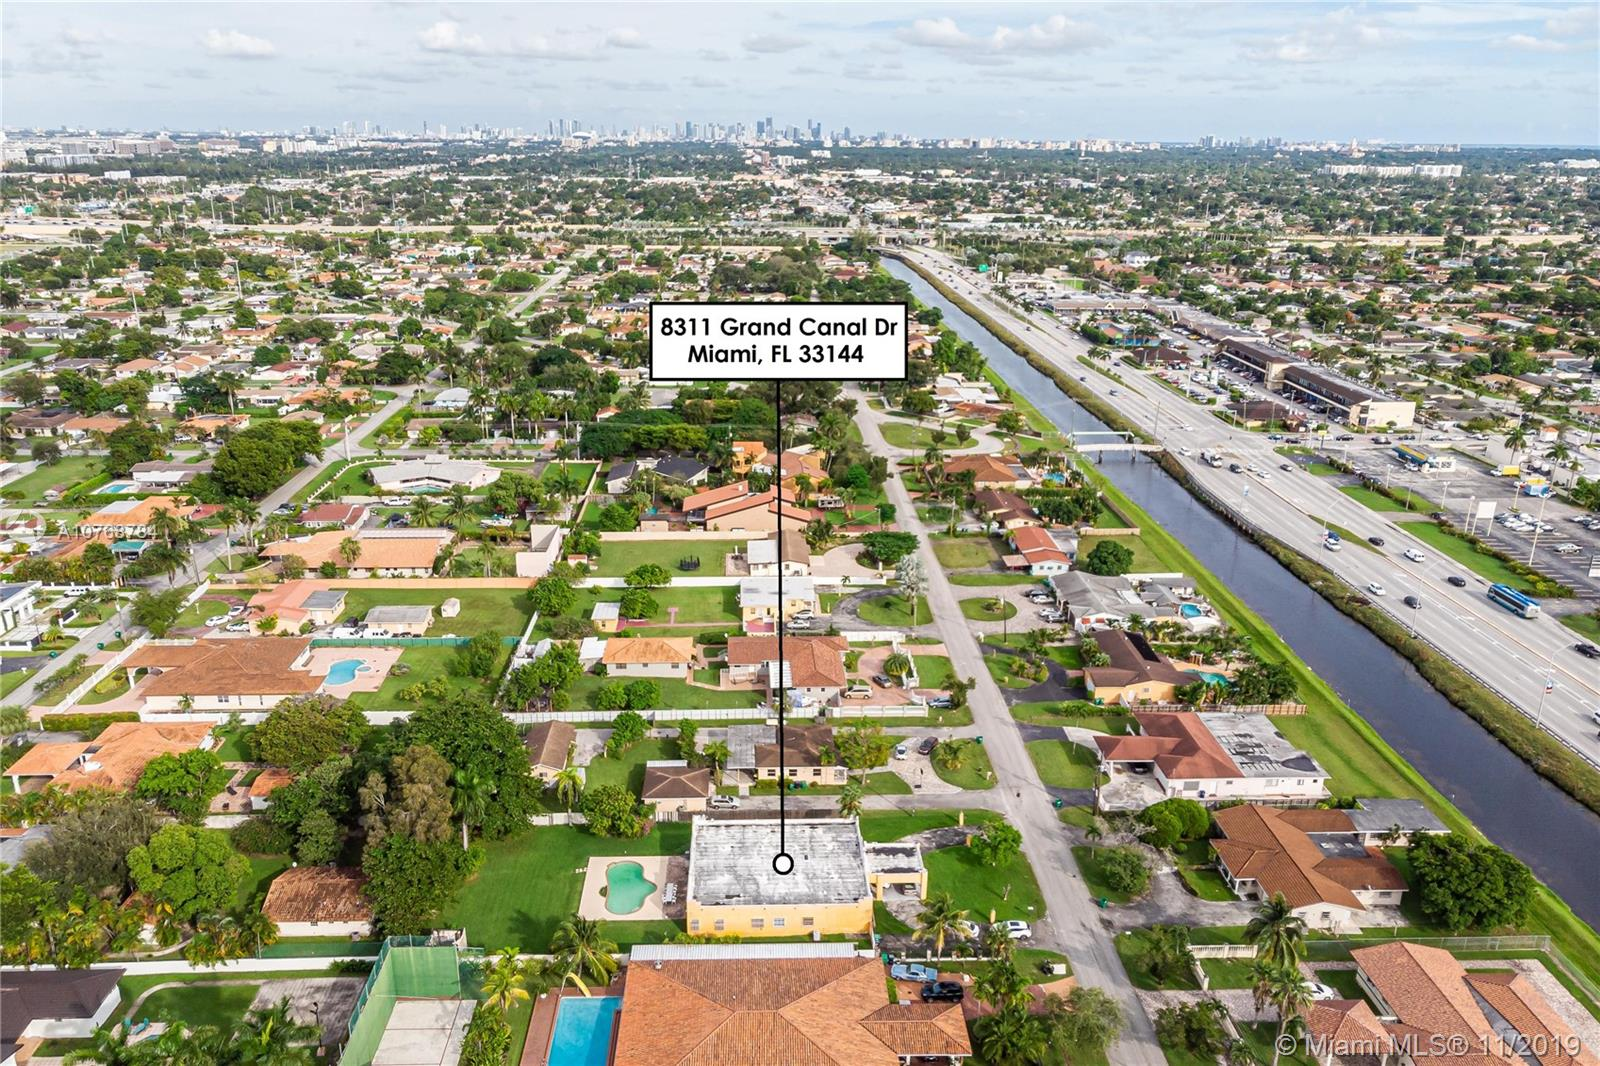 8311 Grand Canal Dr, Miami FL 33144